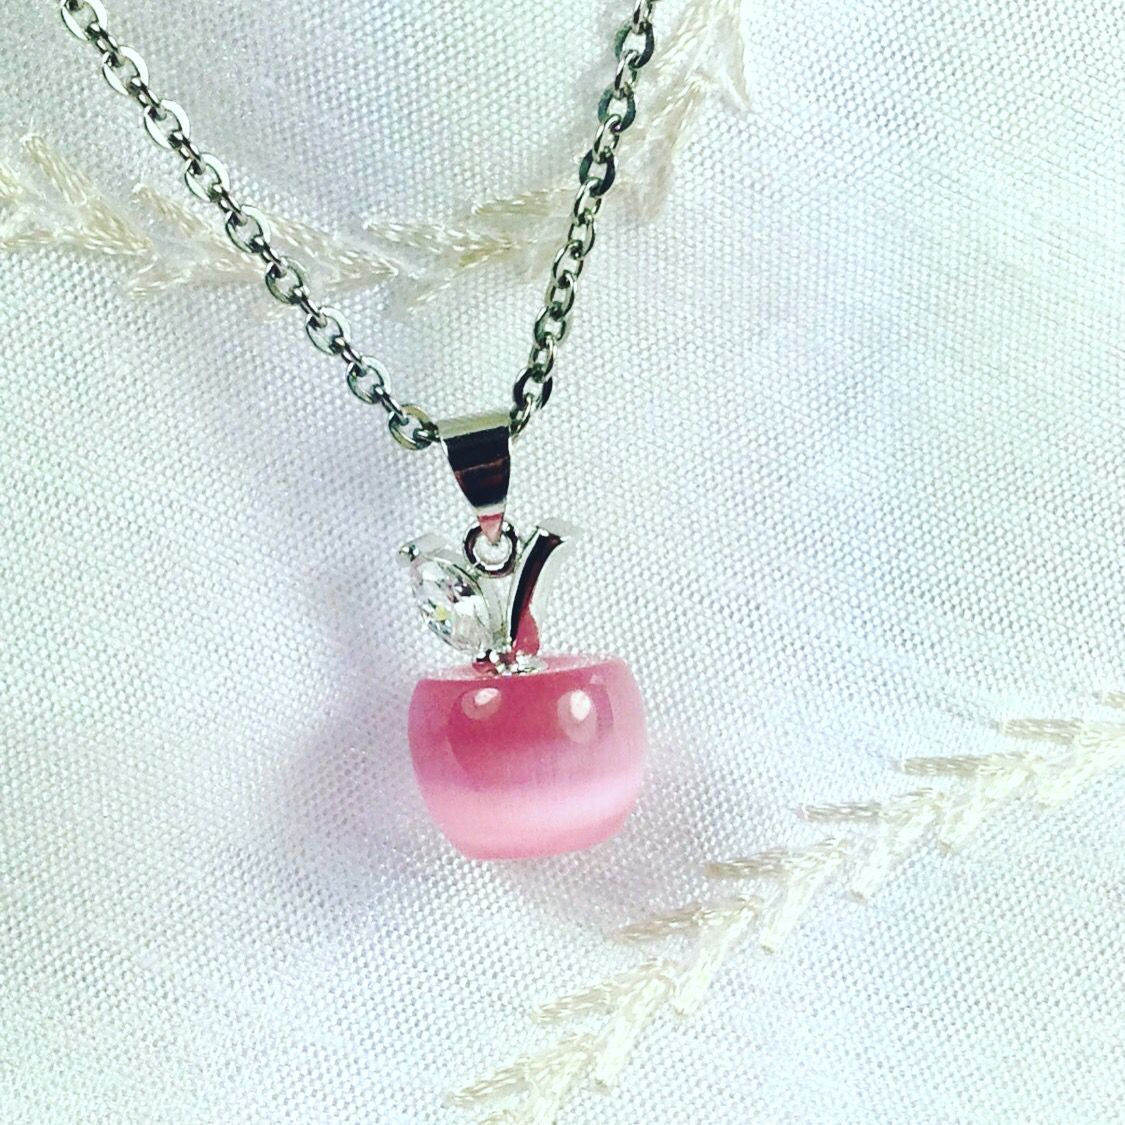 Cat&#39;s Eye #Apple #Necklace w/ #Crystal Leaf #Handmade #NorthCoastCottage #Jewelry  https:// buff.ly/2jXVLbA  &nbsp;   #pink #MothersDay #shopping #gift<br>http://pic.twitter.com/3GXgNUYV6b